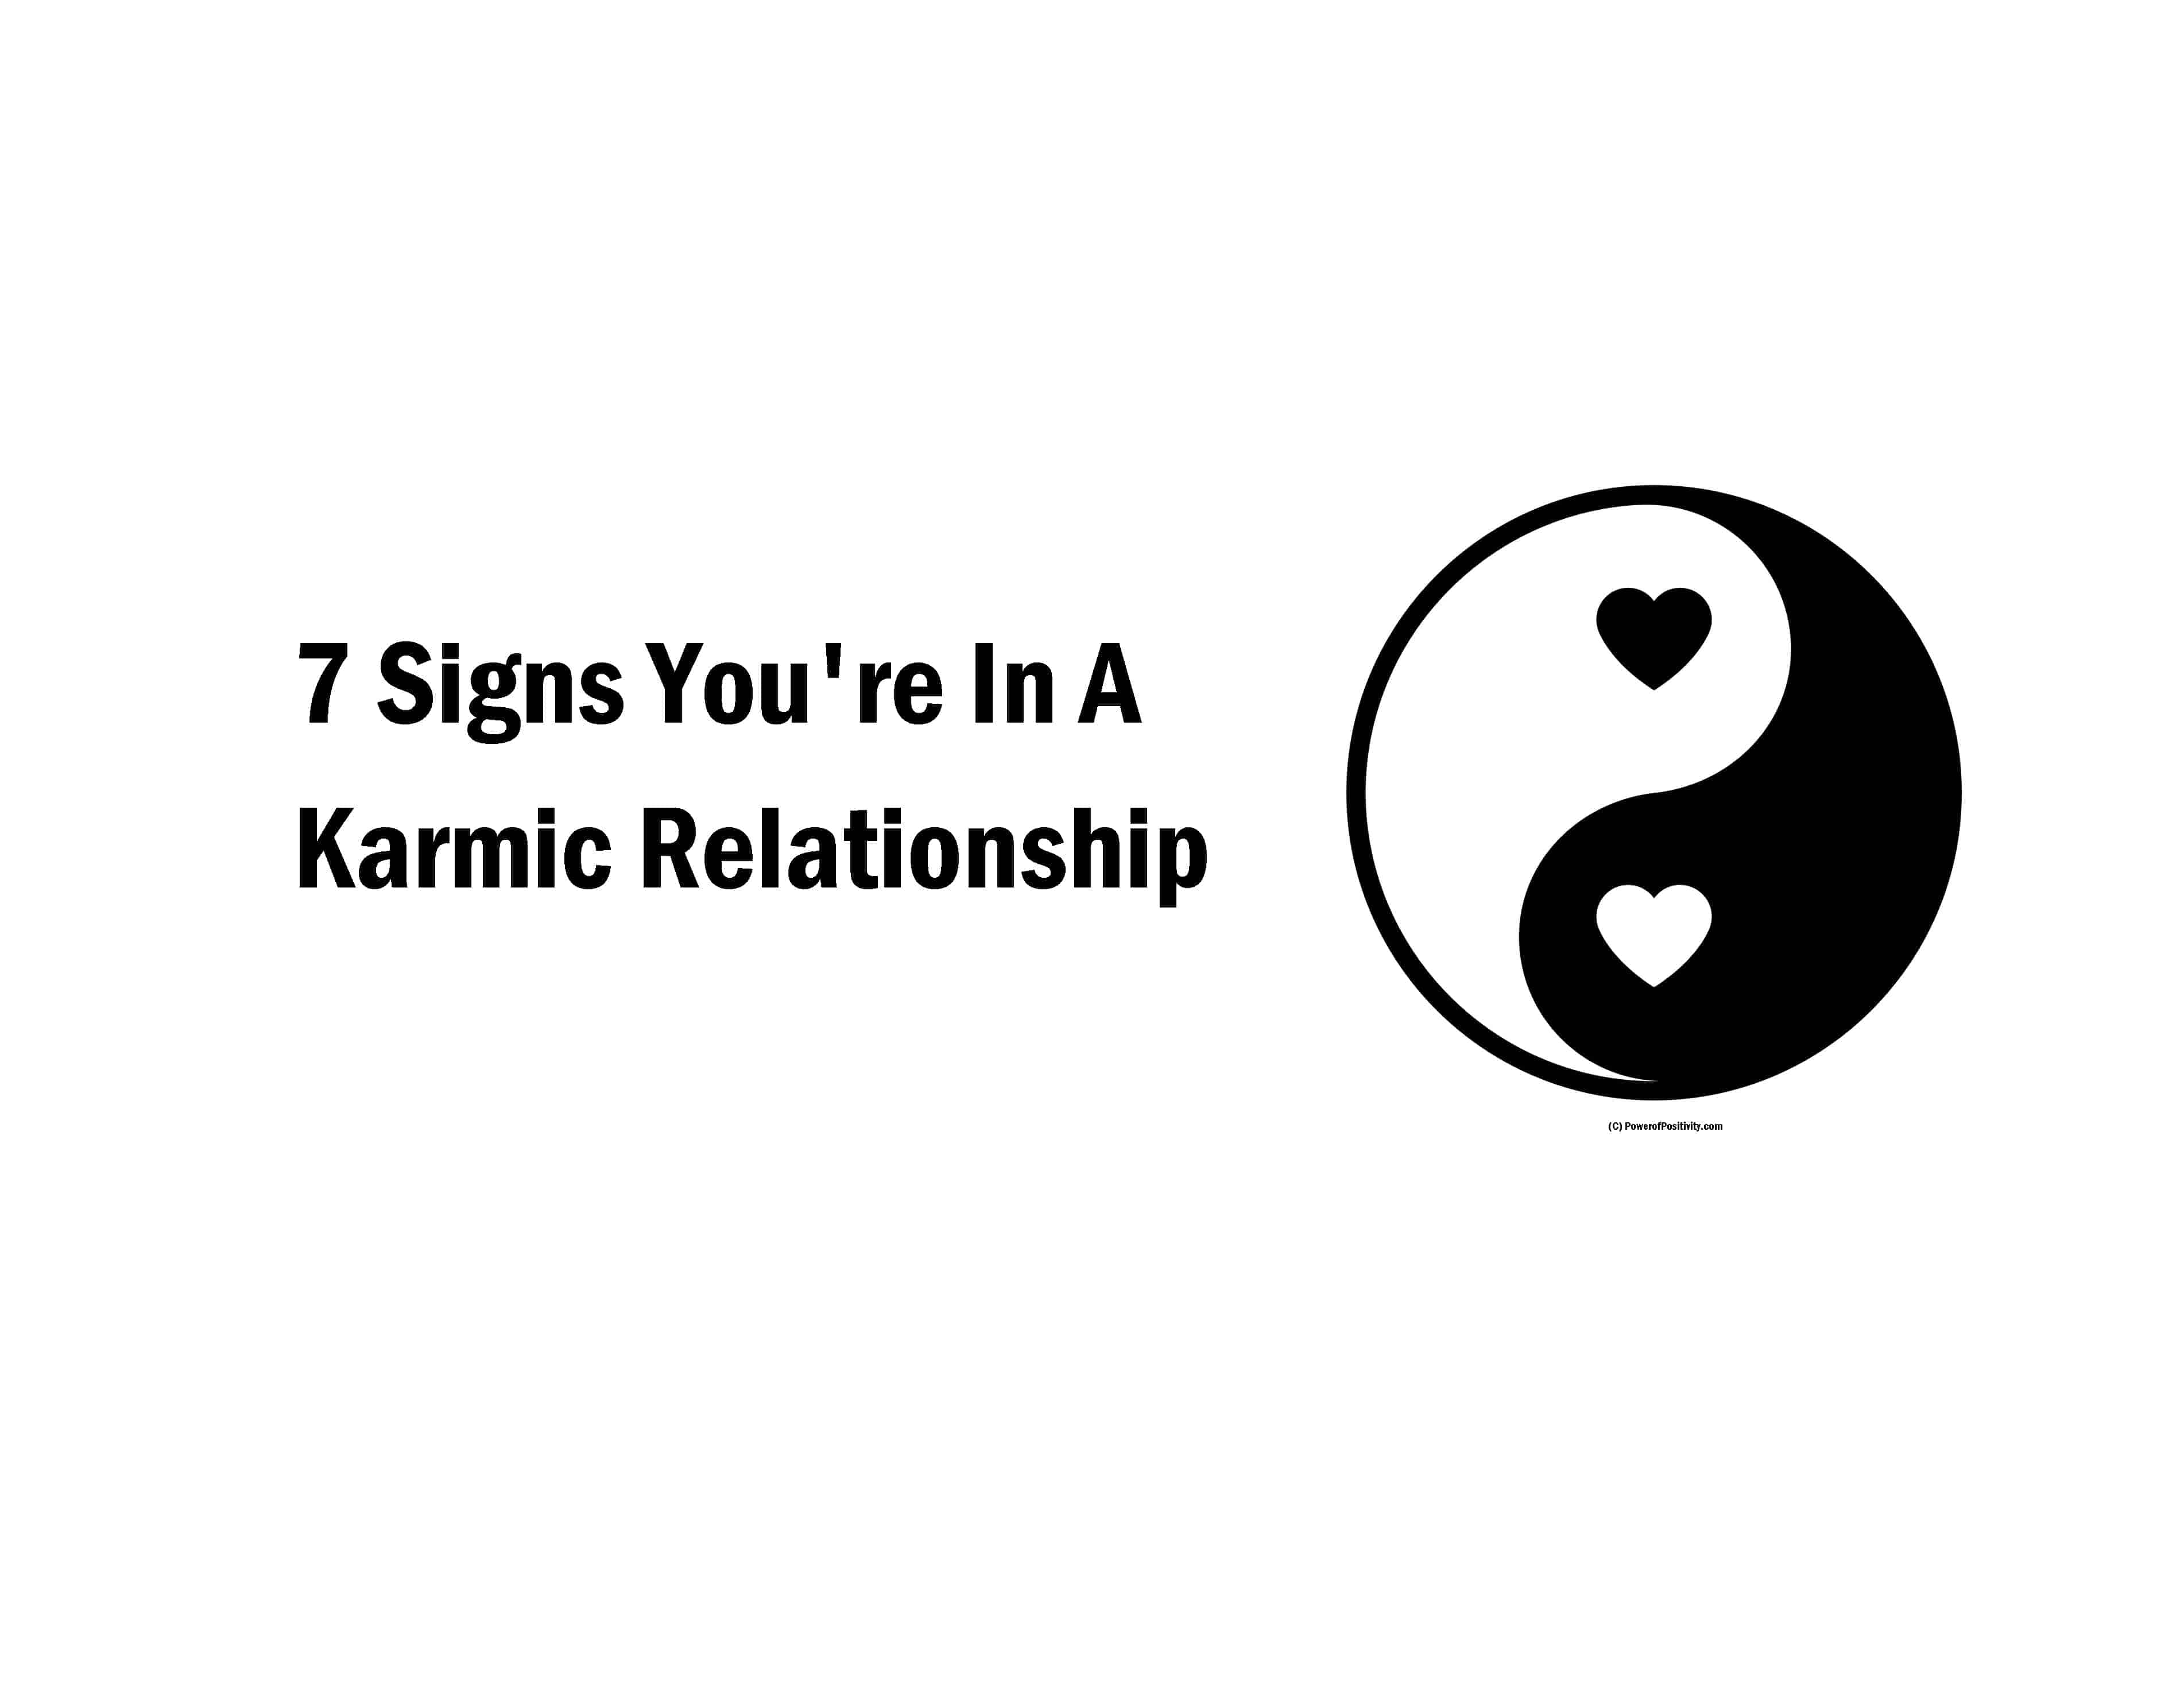 7 Signs You're In A Karmic Relationship